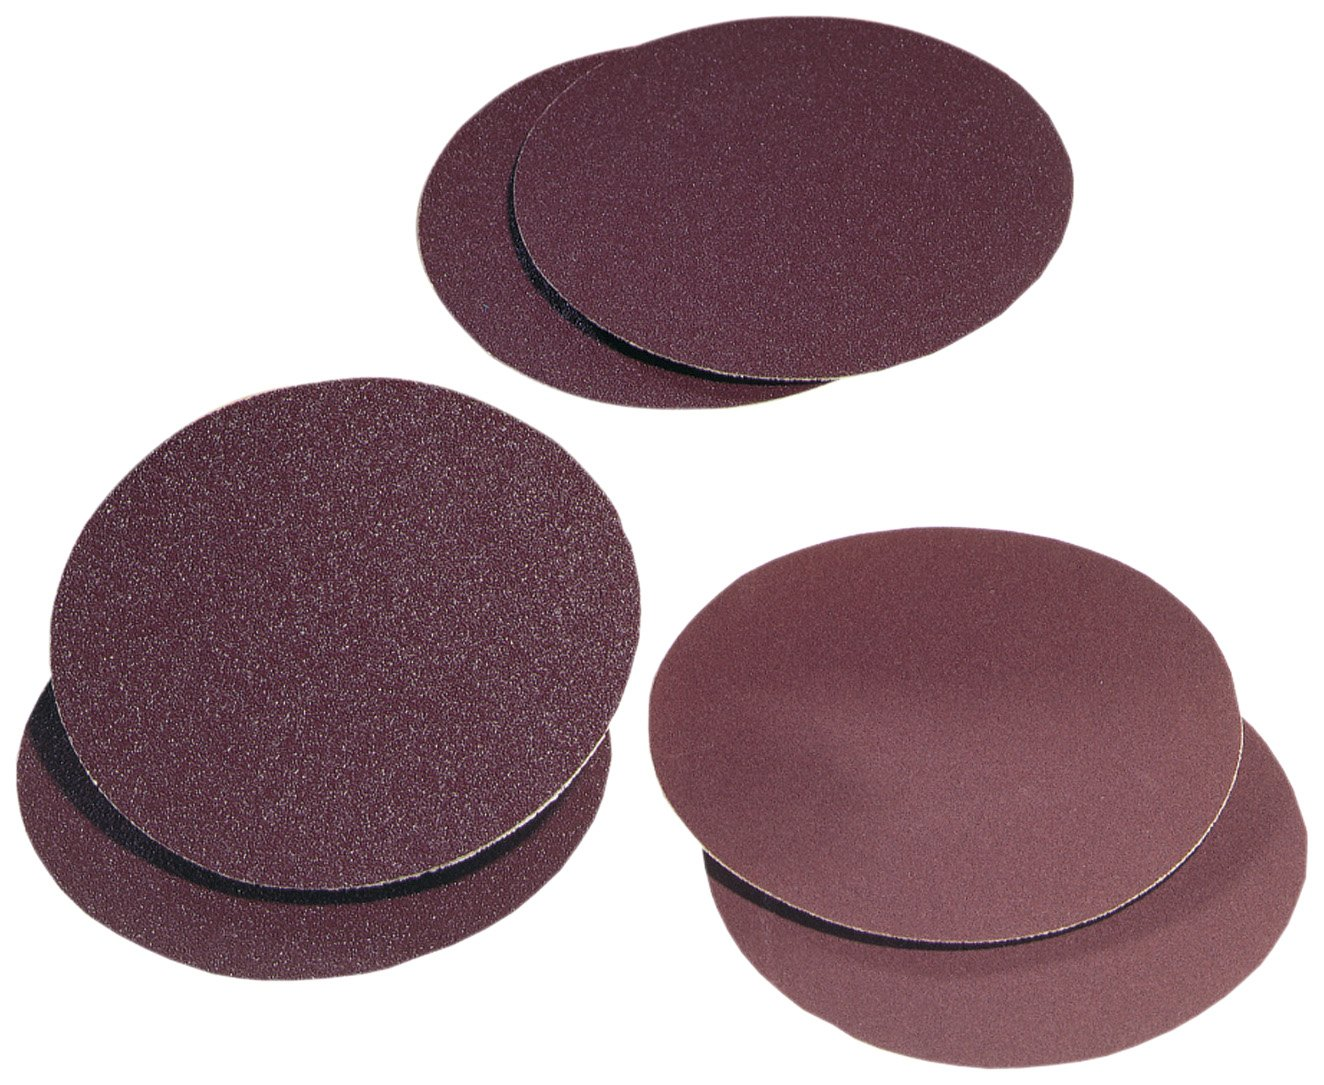 DELTA 31-347 80 Grit Self-Adhesive Sanding Disc